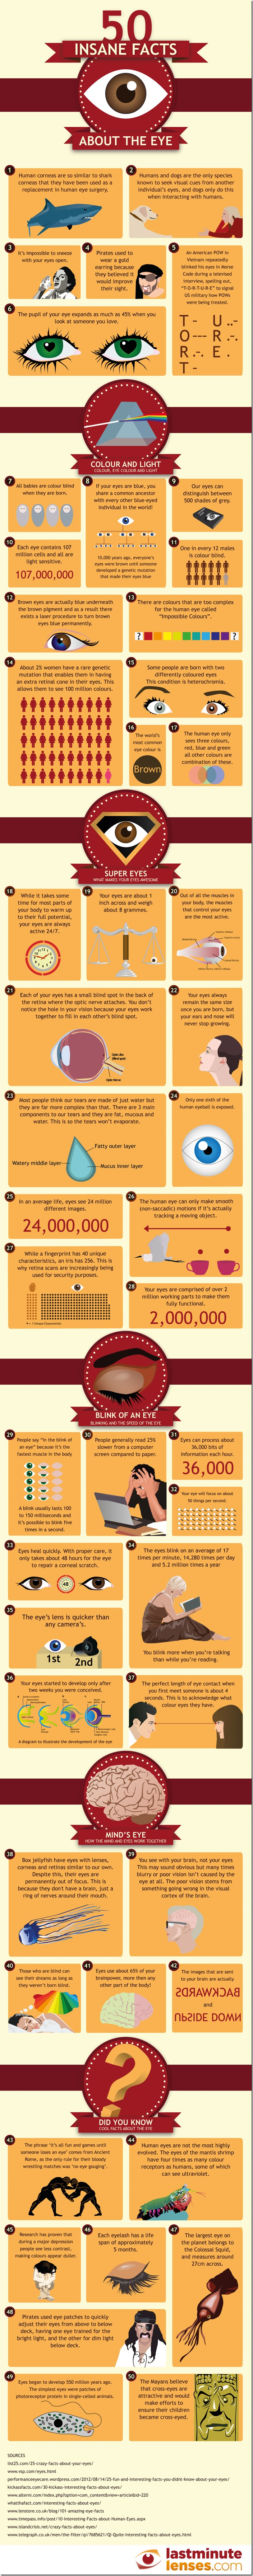 50-insane-facts-about-the-eye